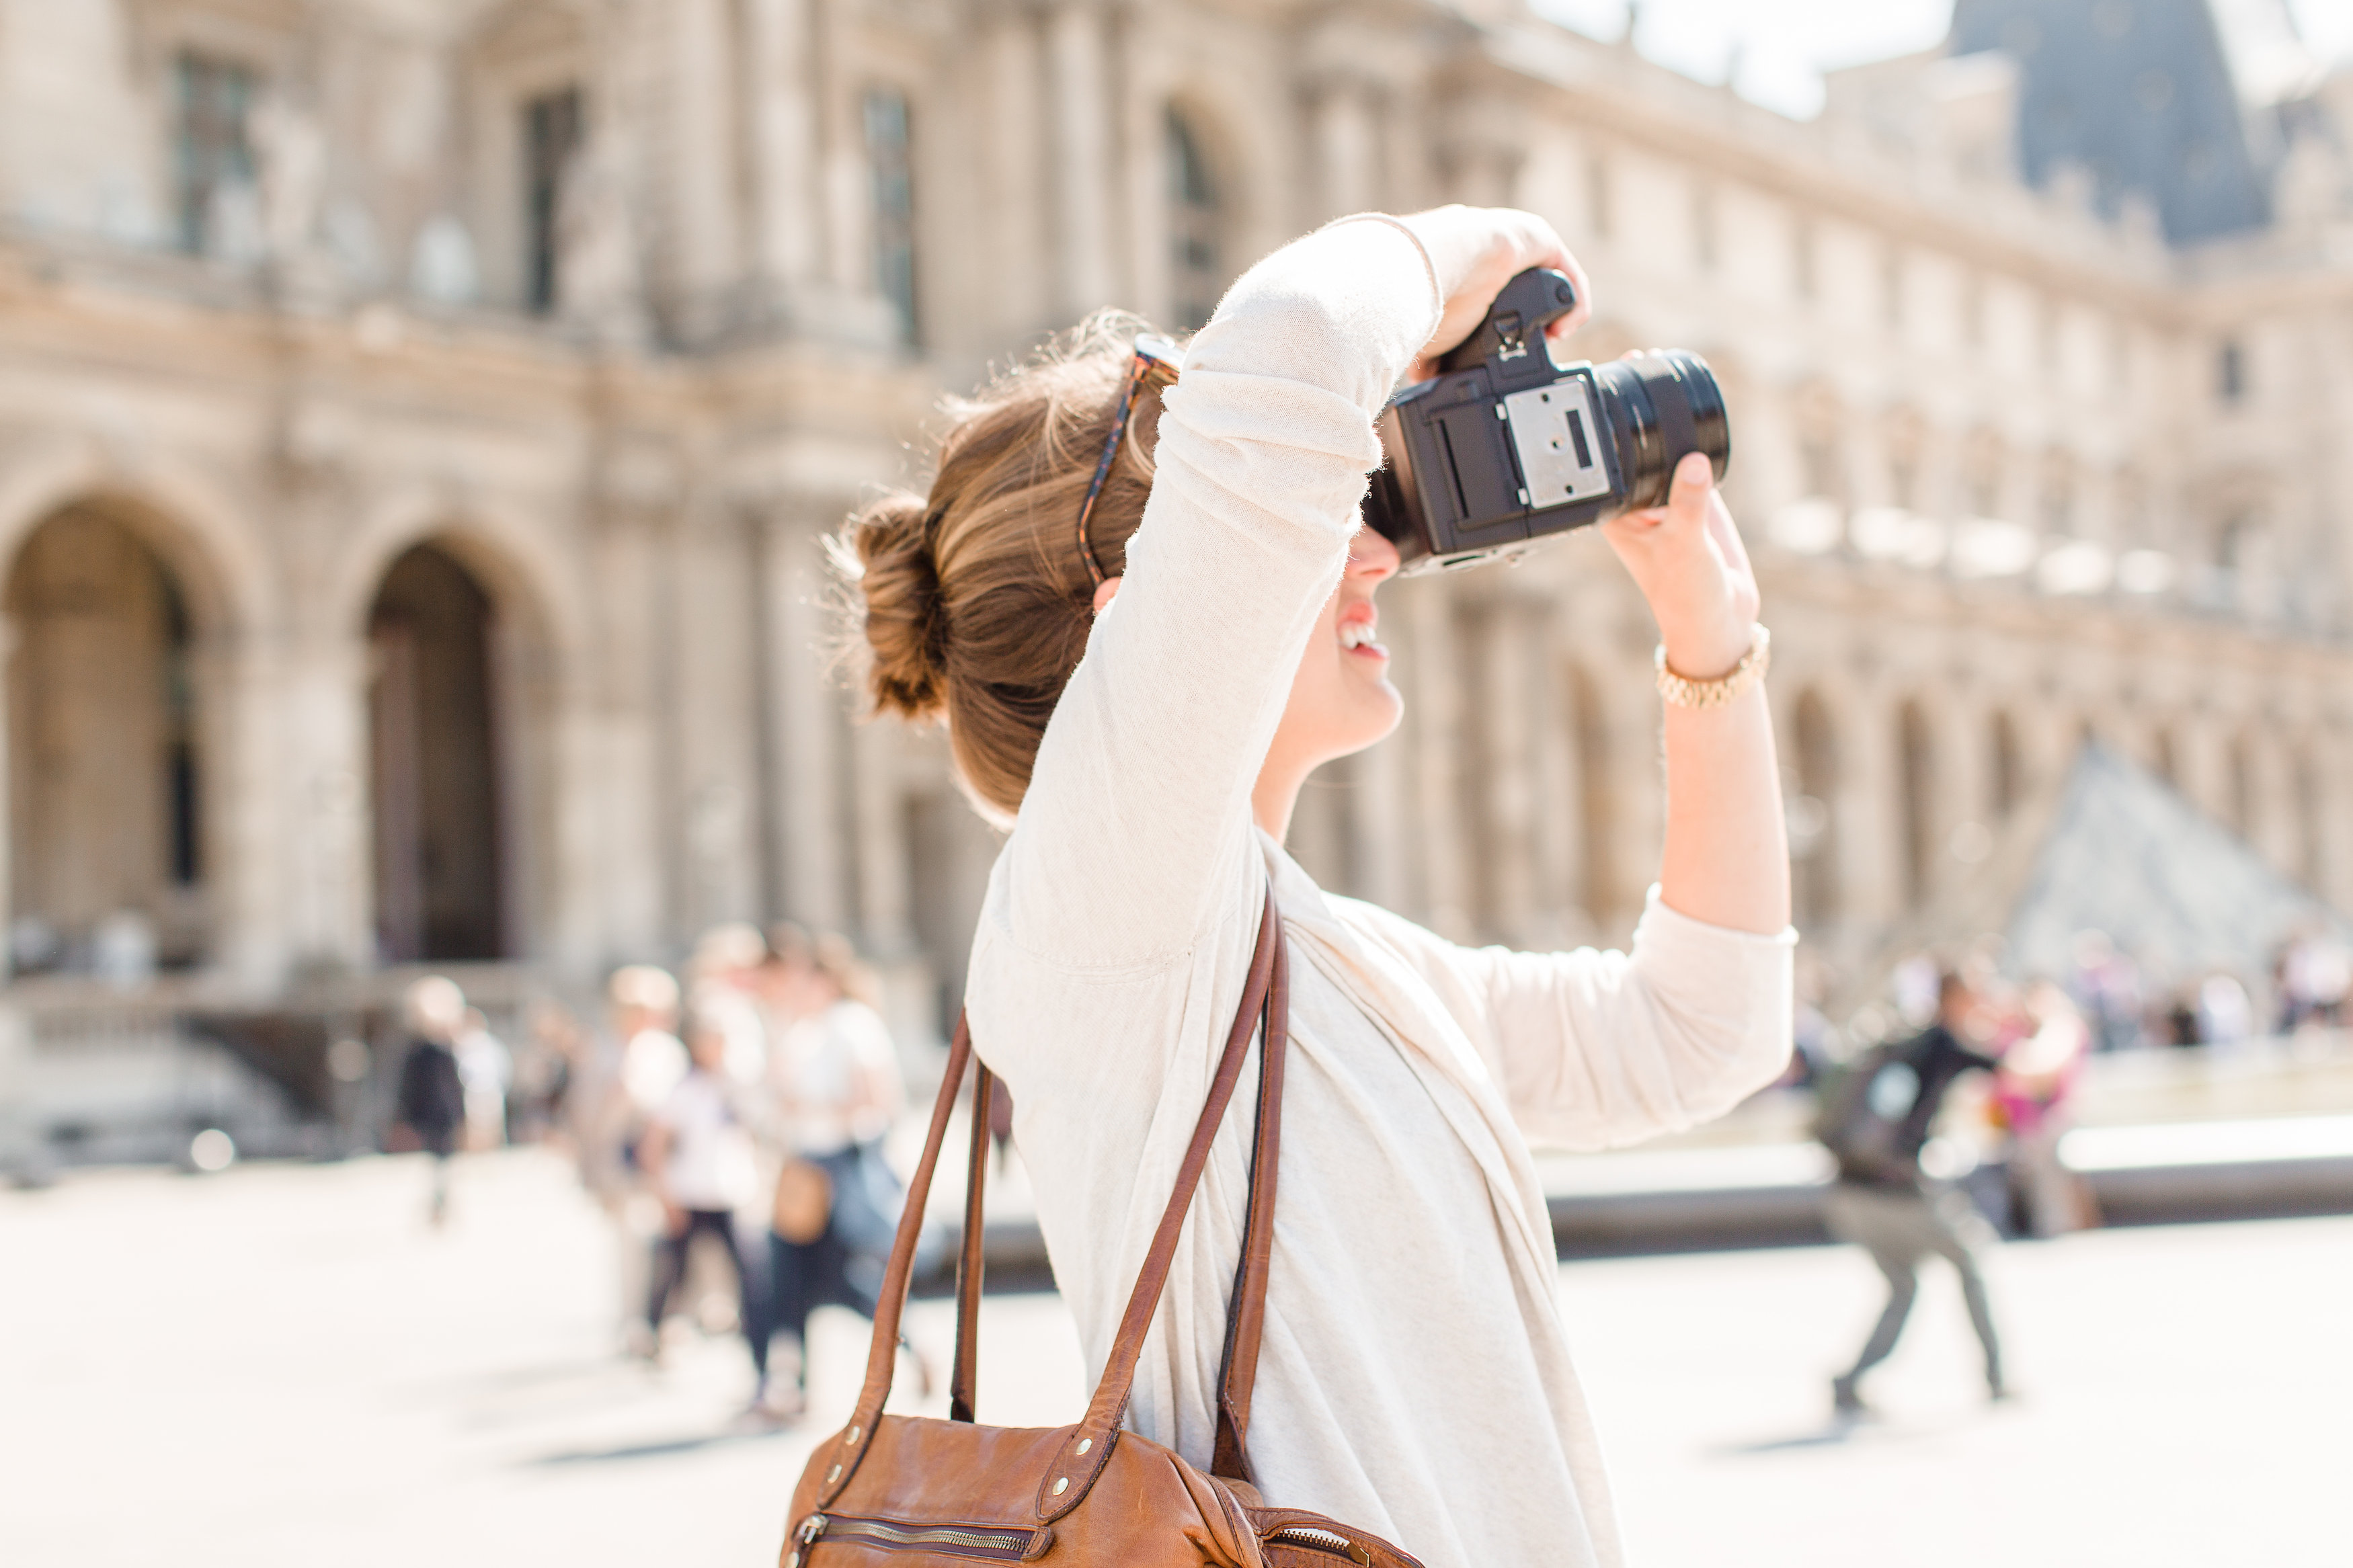 12 Girl taking photo in front of Lourvre Paris by Anna K Photography